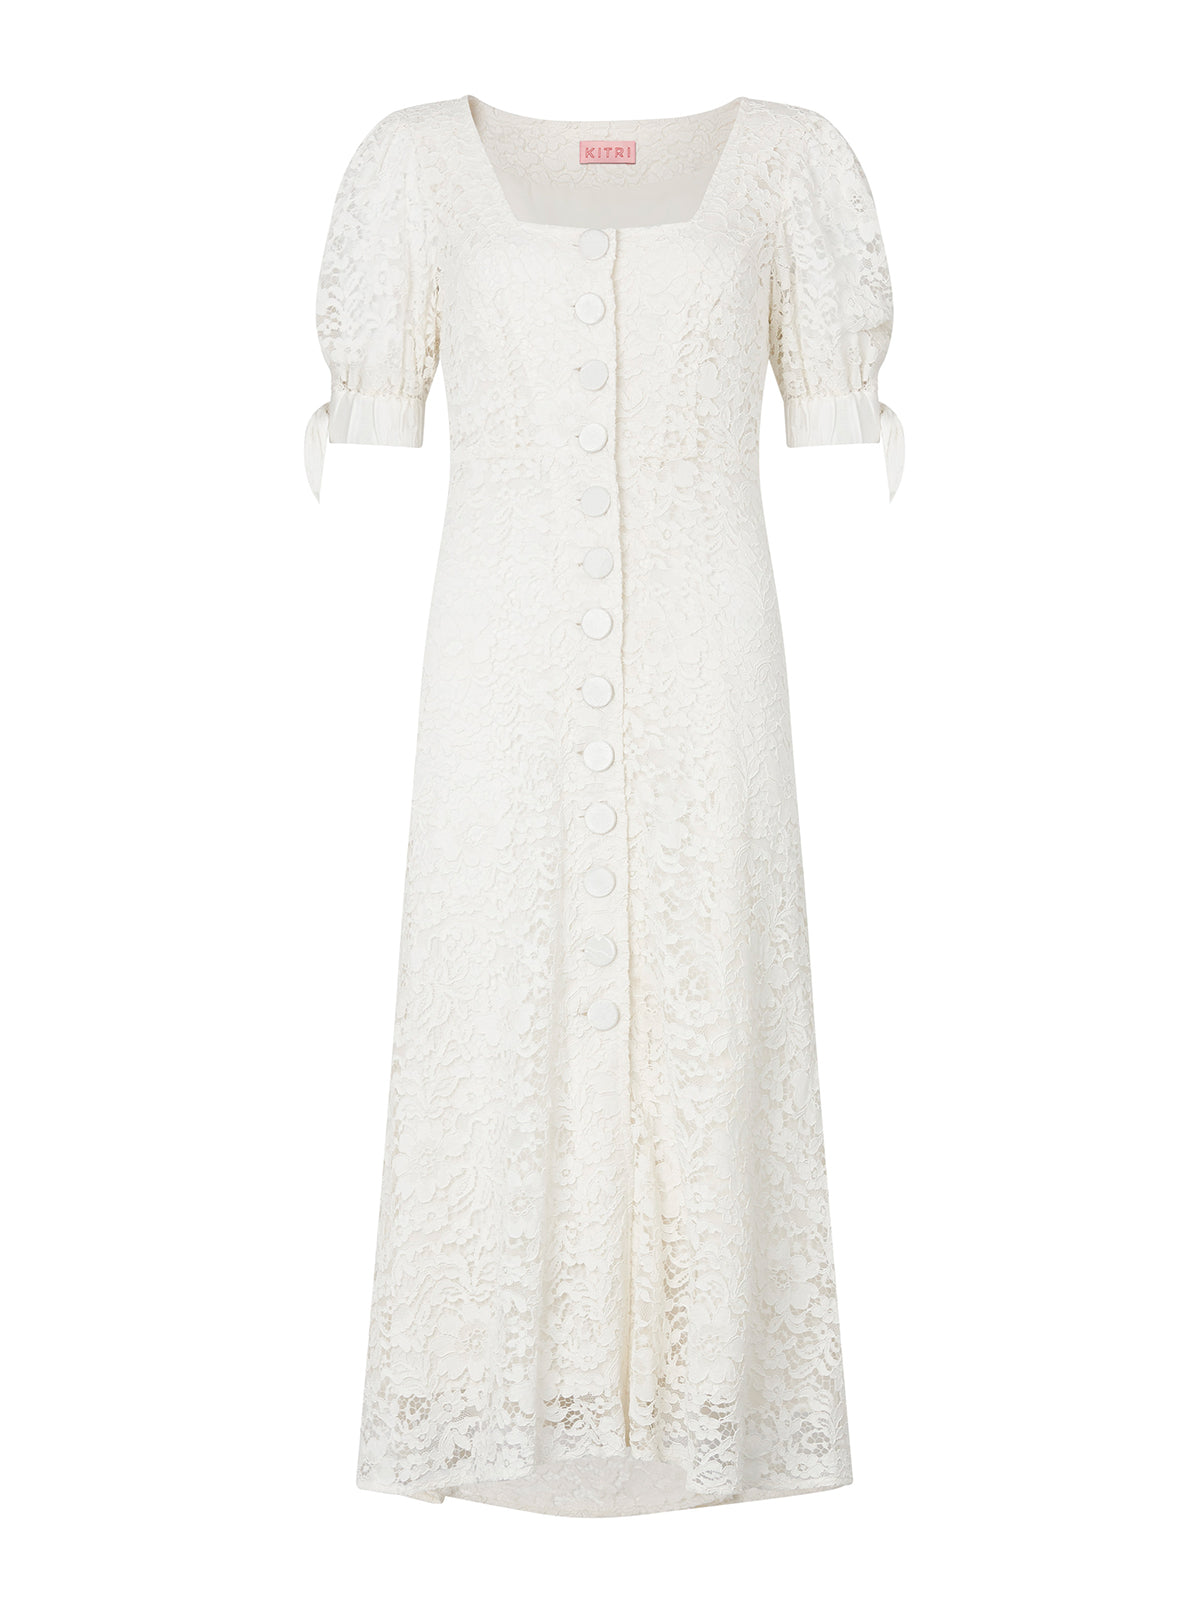 Chagall Ivory Lace Midi Dress by KITRI Studio